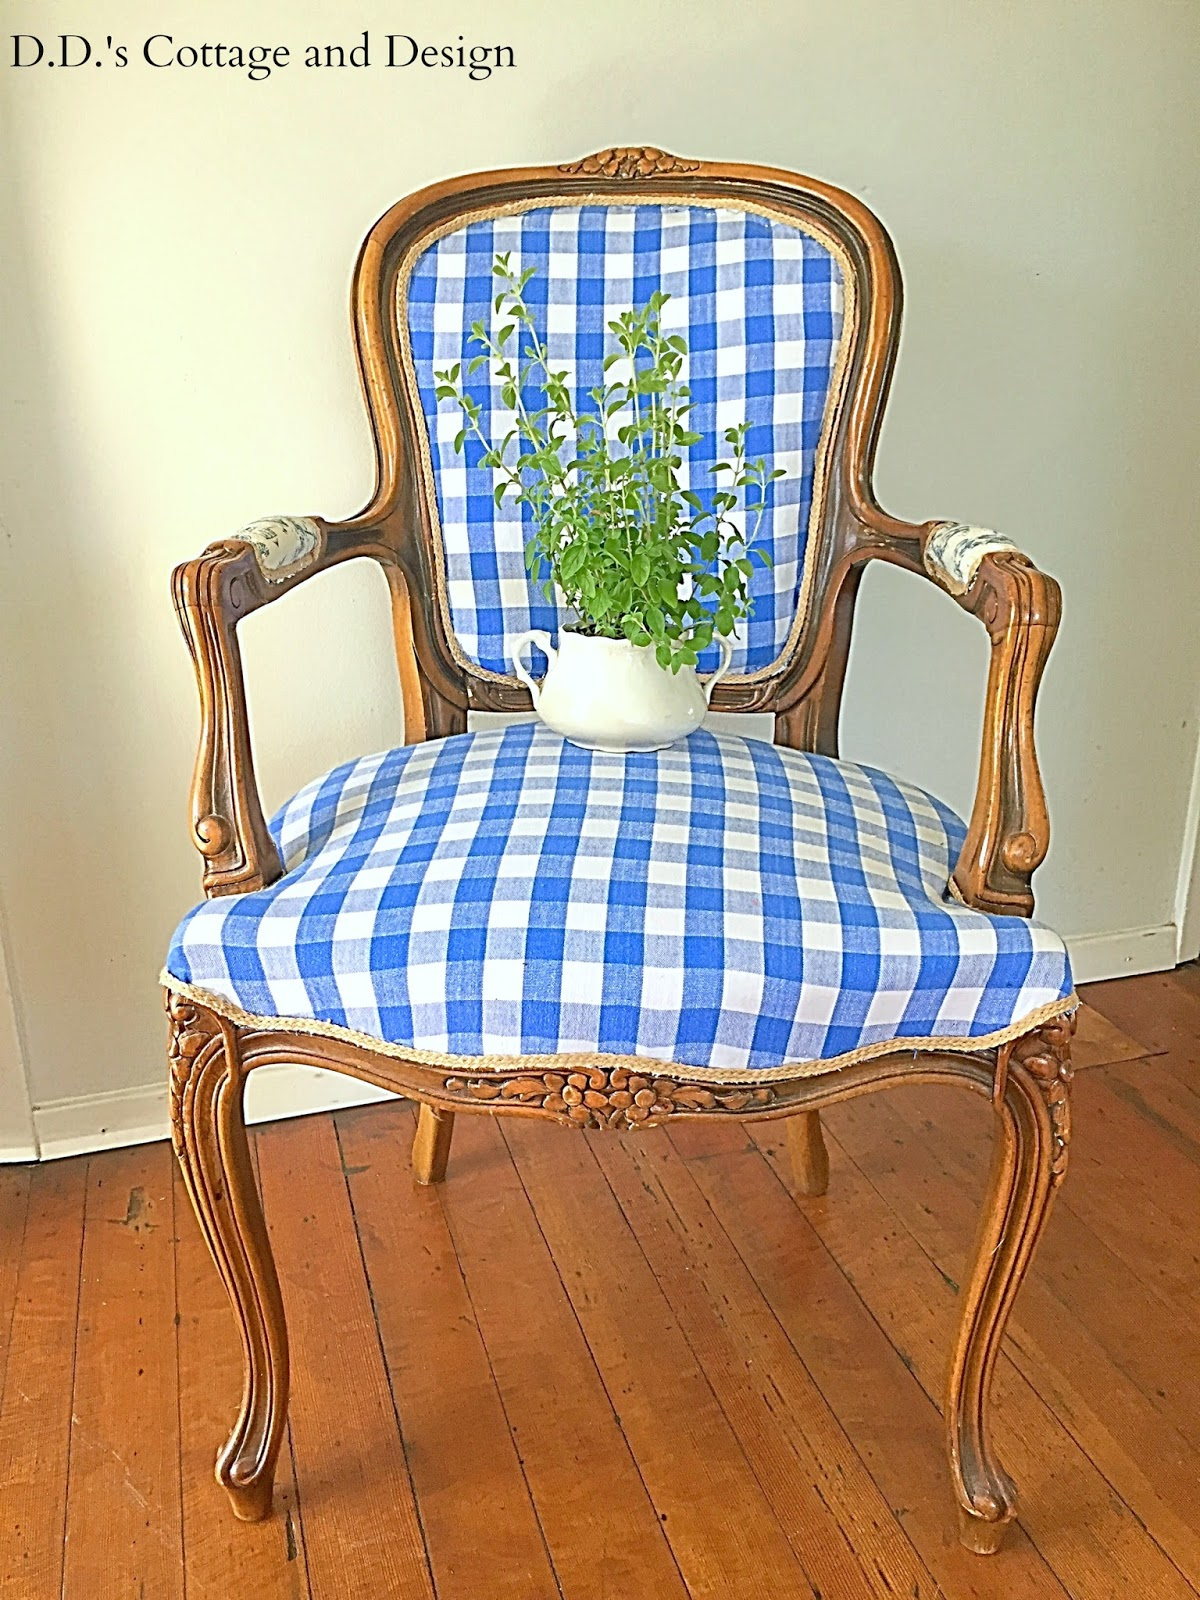 Buffalo Plaid Chair Covers At Walmart D 39s Cottage And Design Check